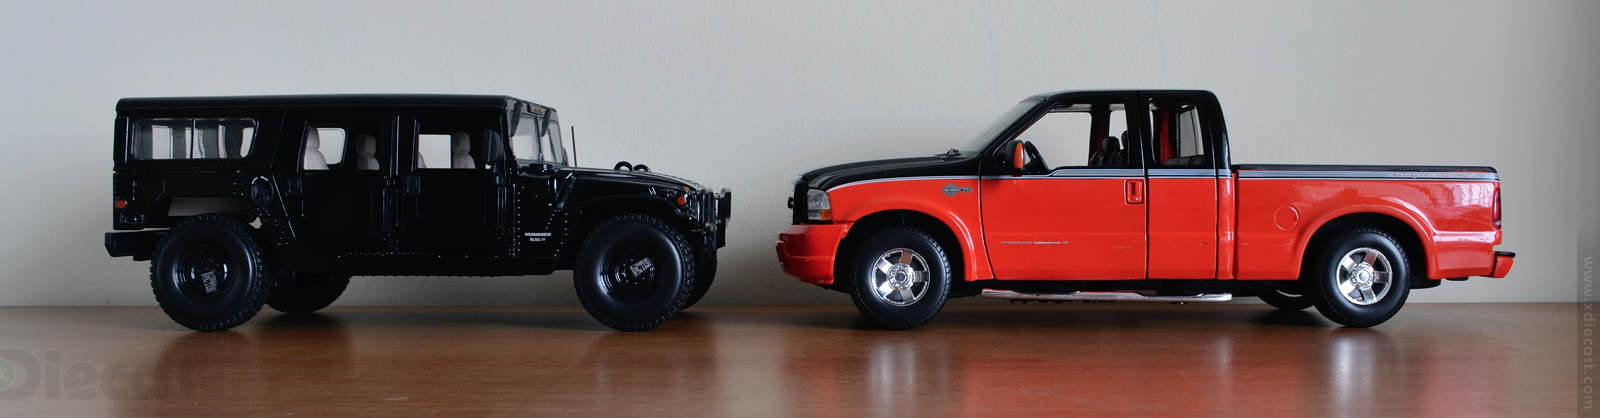 Size Comparison Hummer H1 vs Ford F350 HD